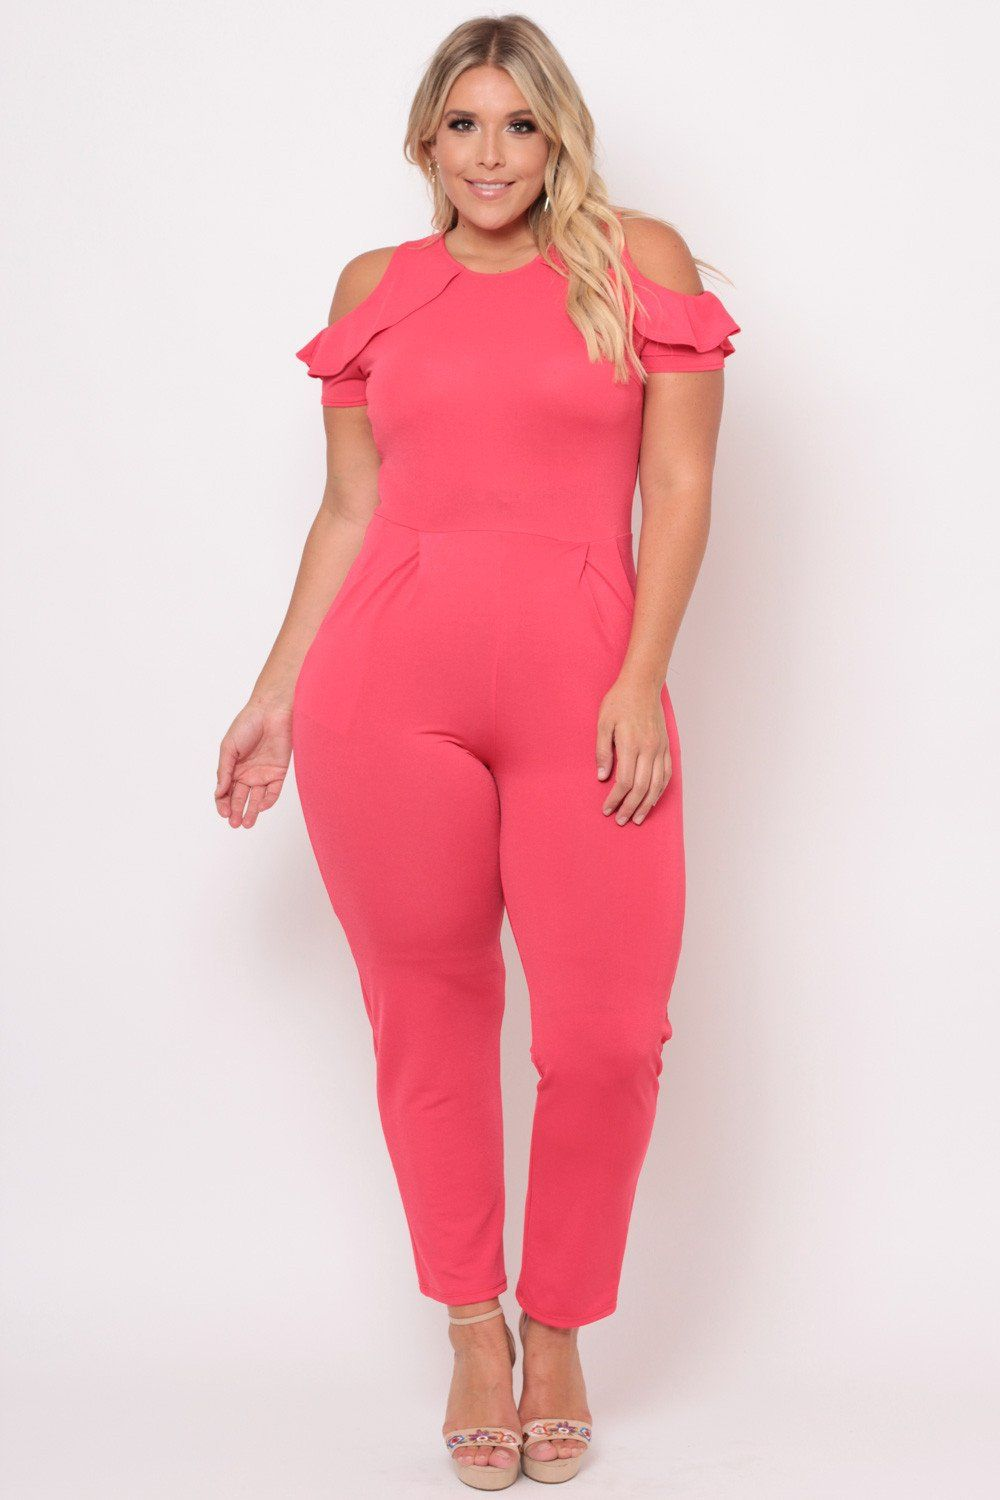 ab5a182ac4a1 This plus size